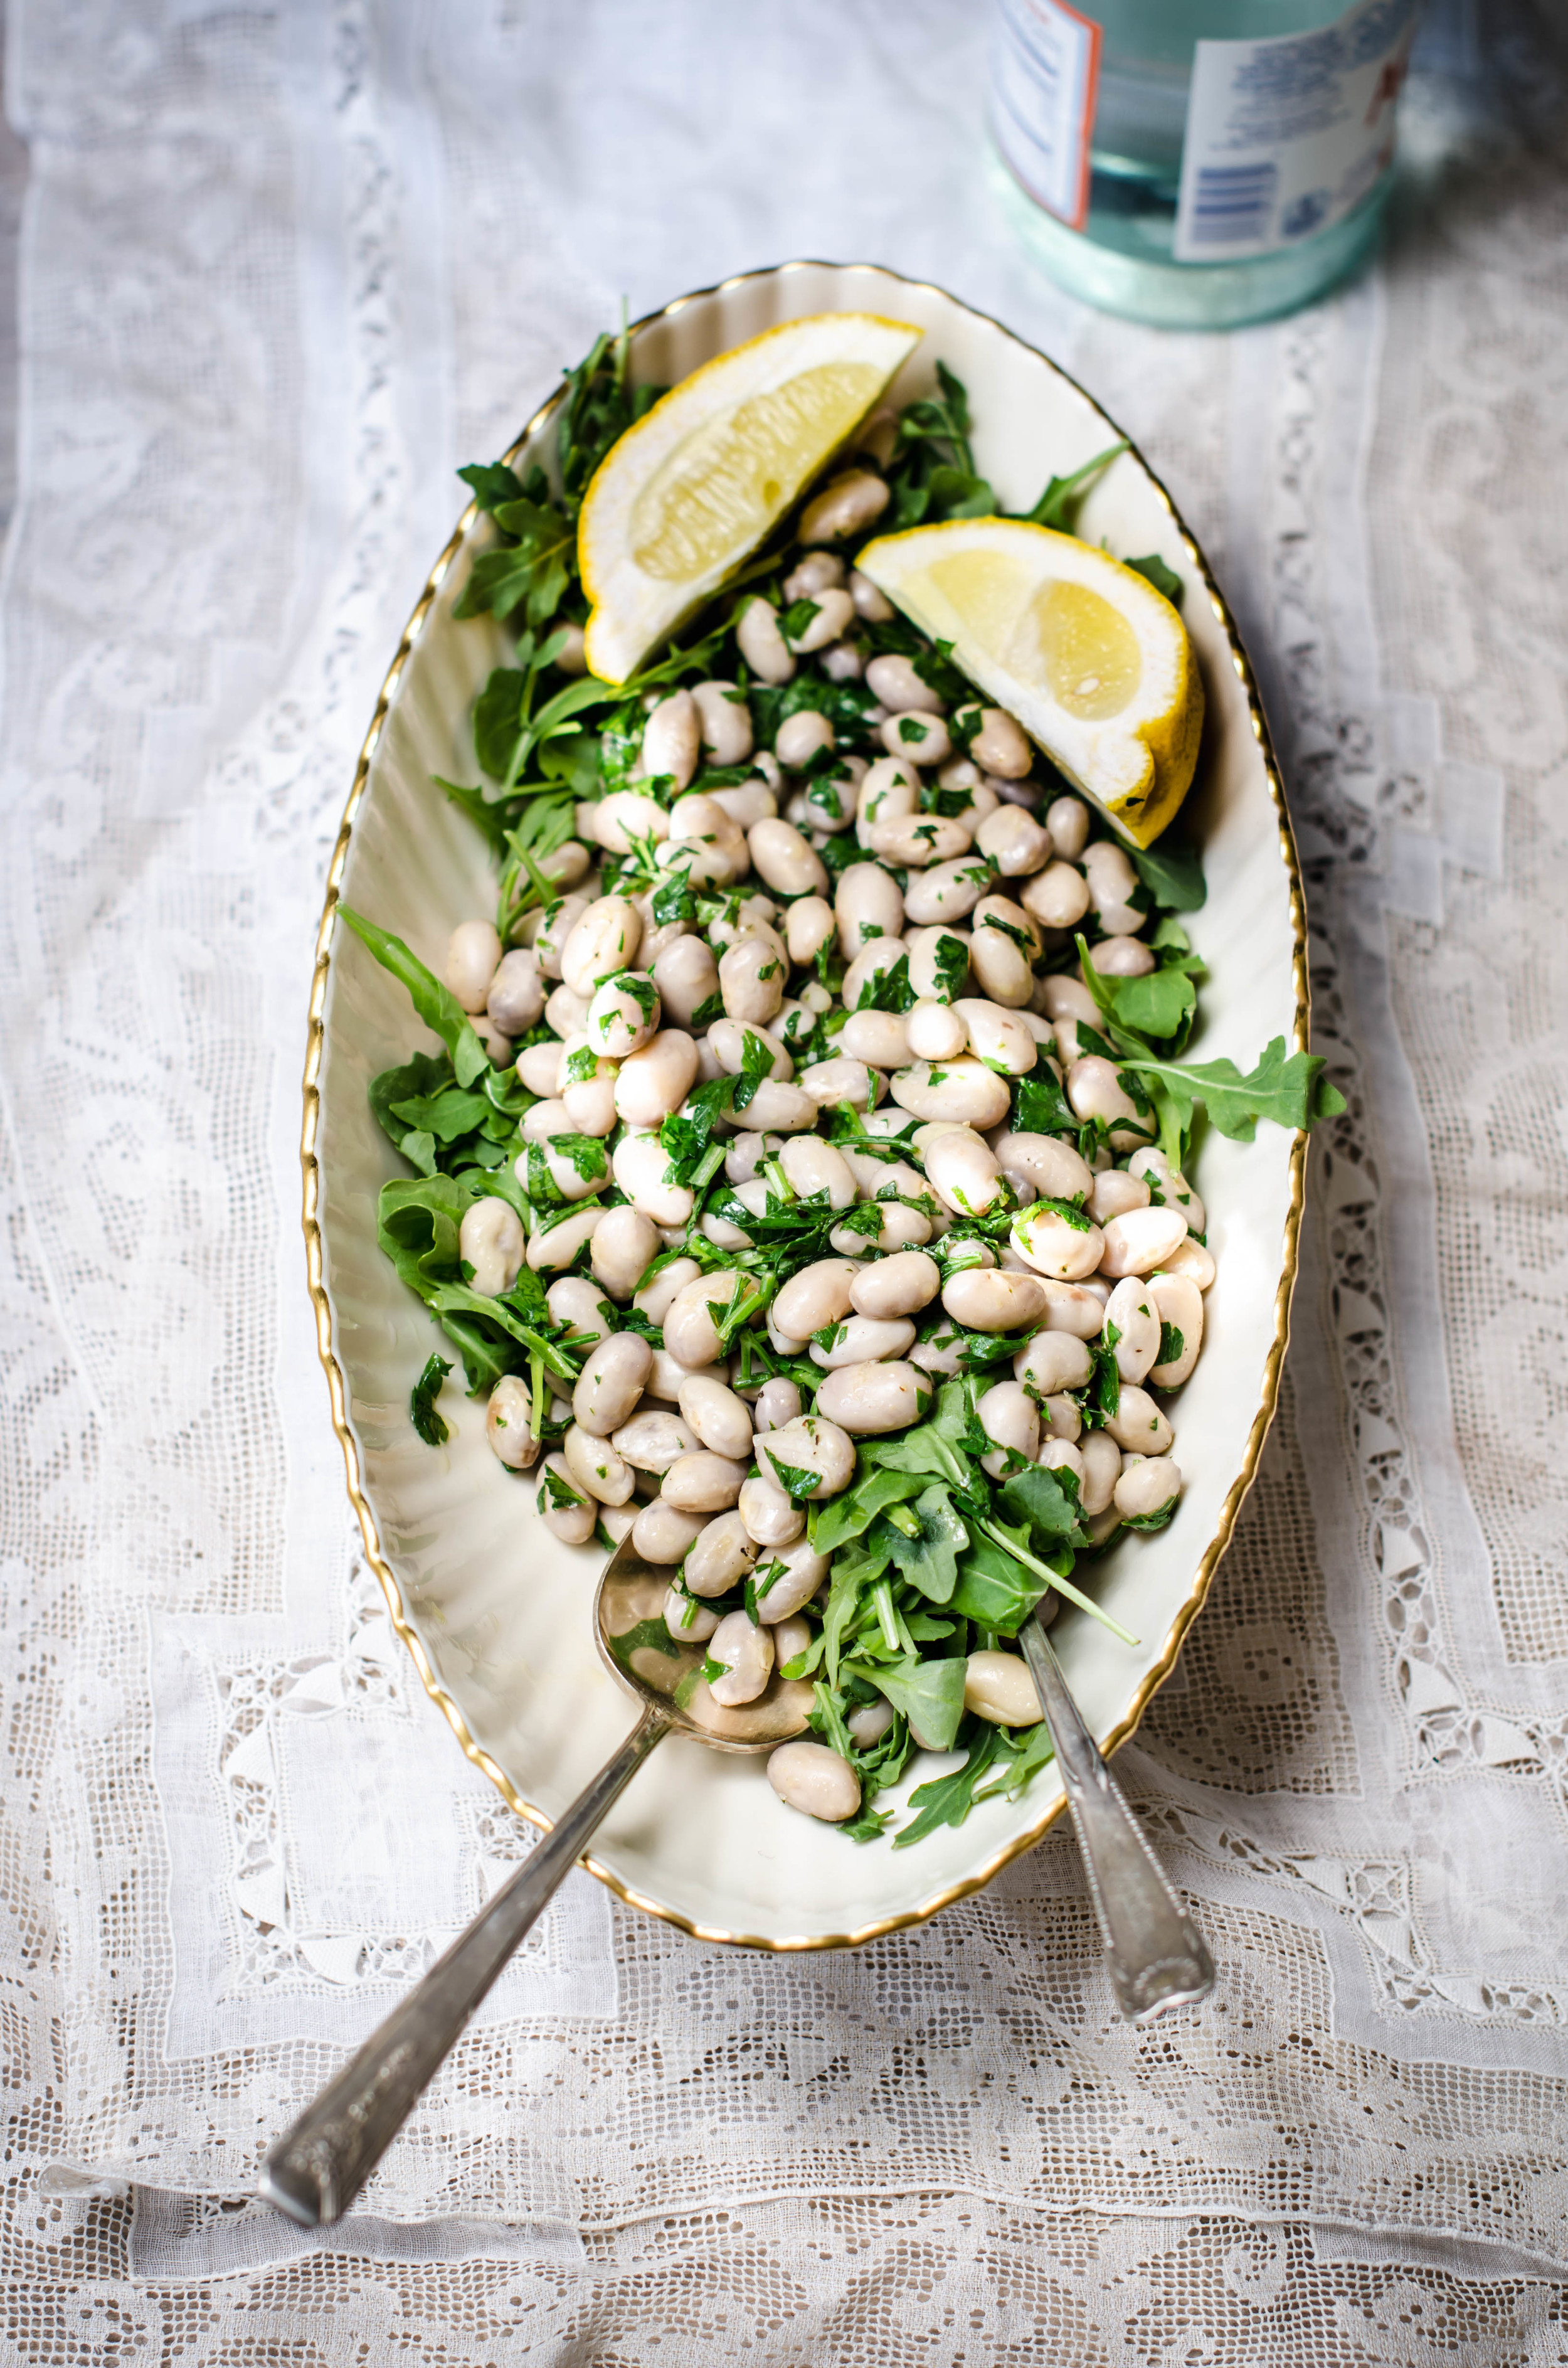 ROSE & IVY Journal Herbed White Bean Salad with Arugula